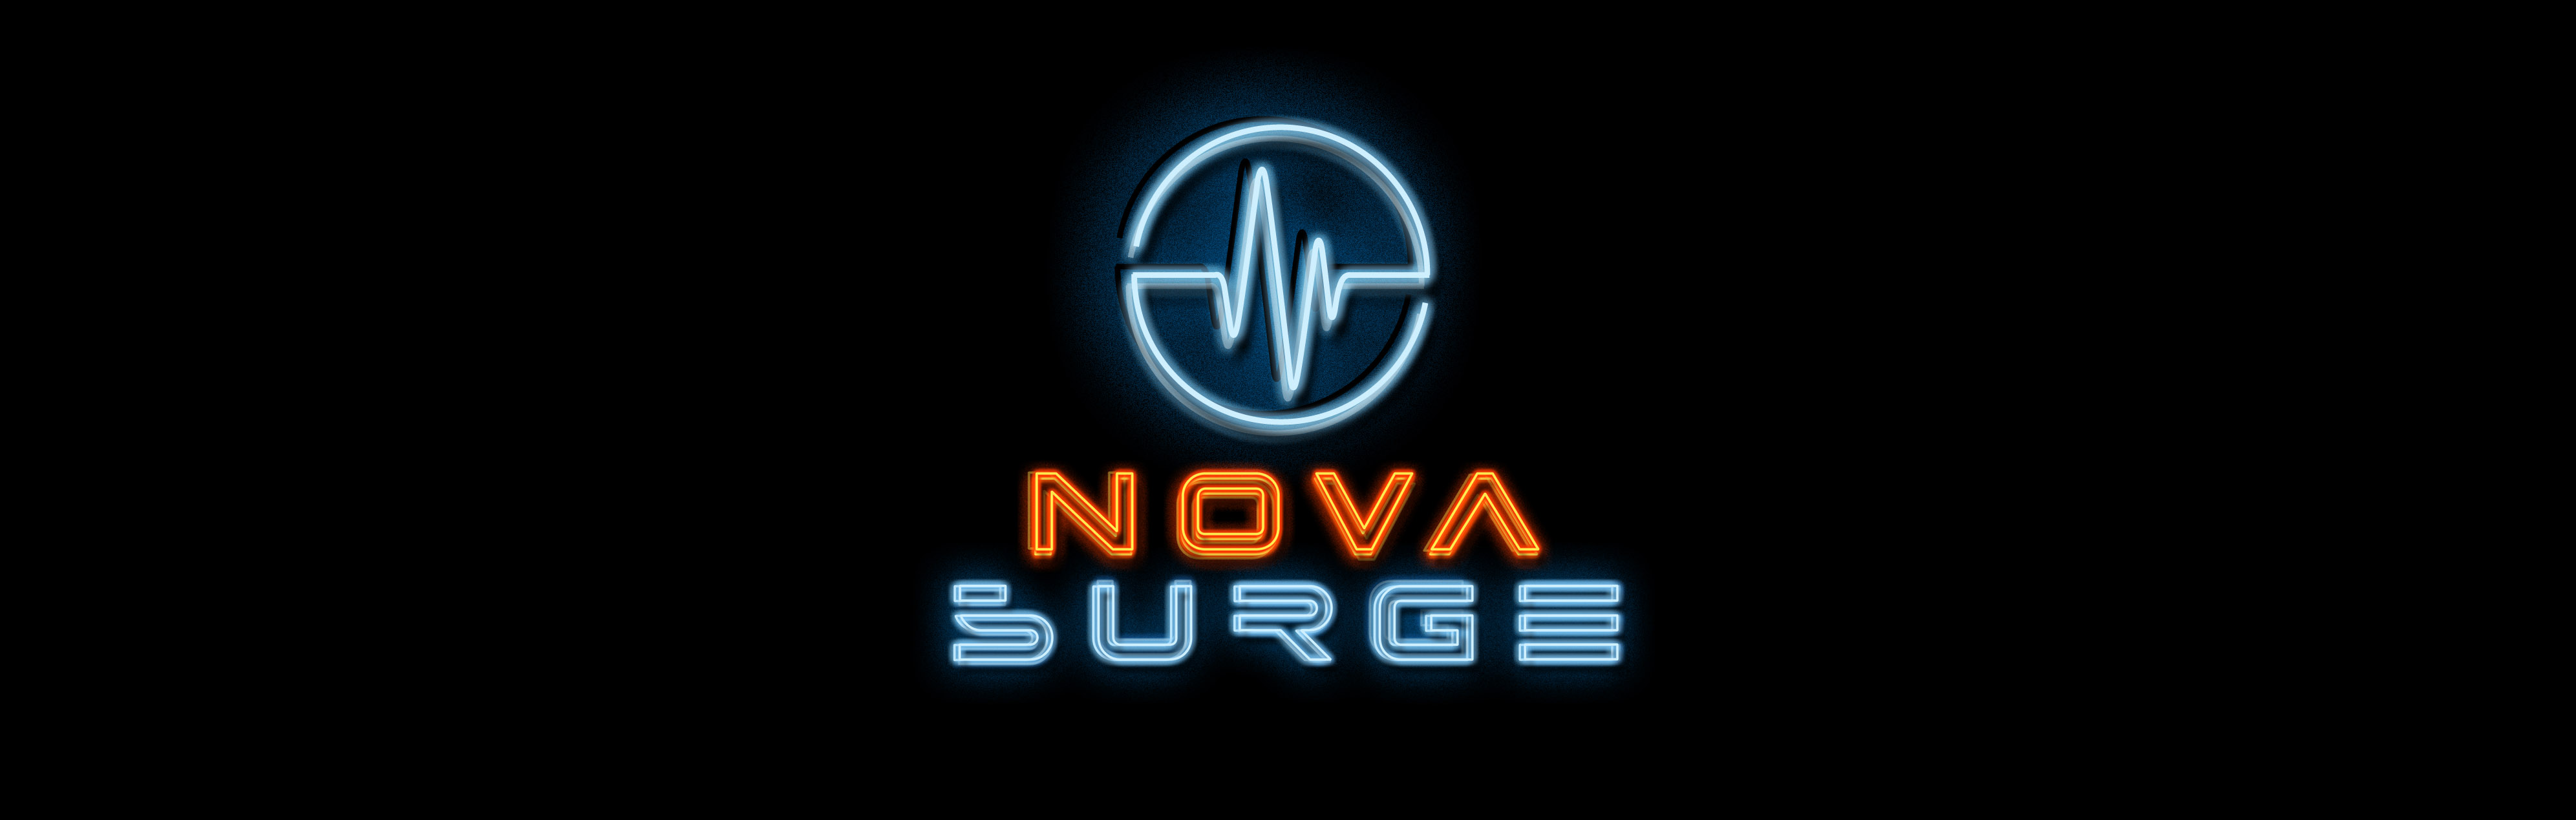 novasurge_VISUAL_2.5